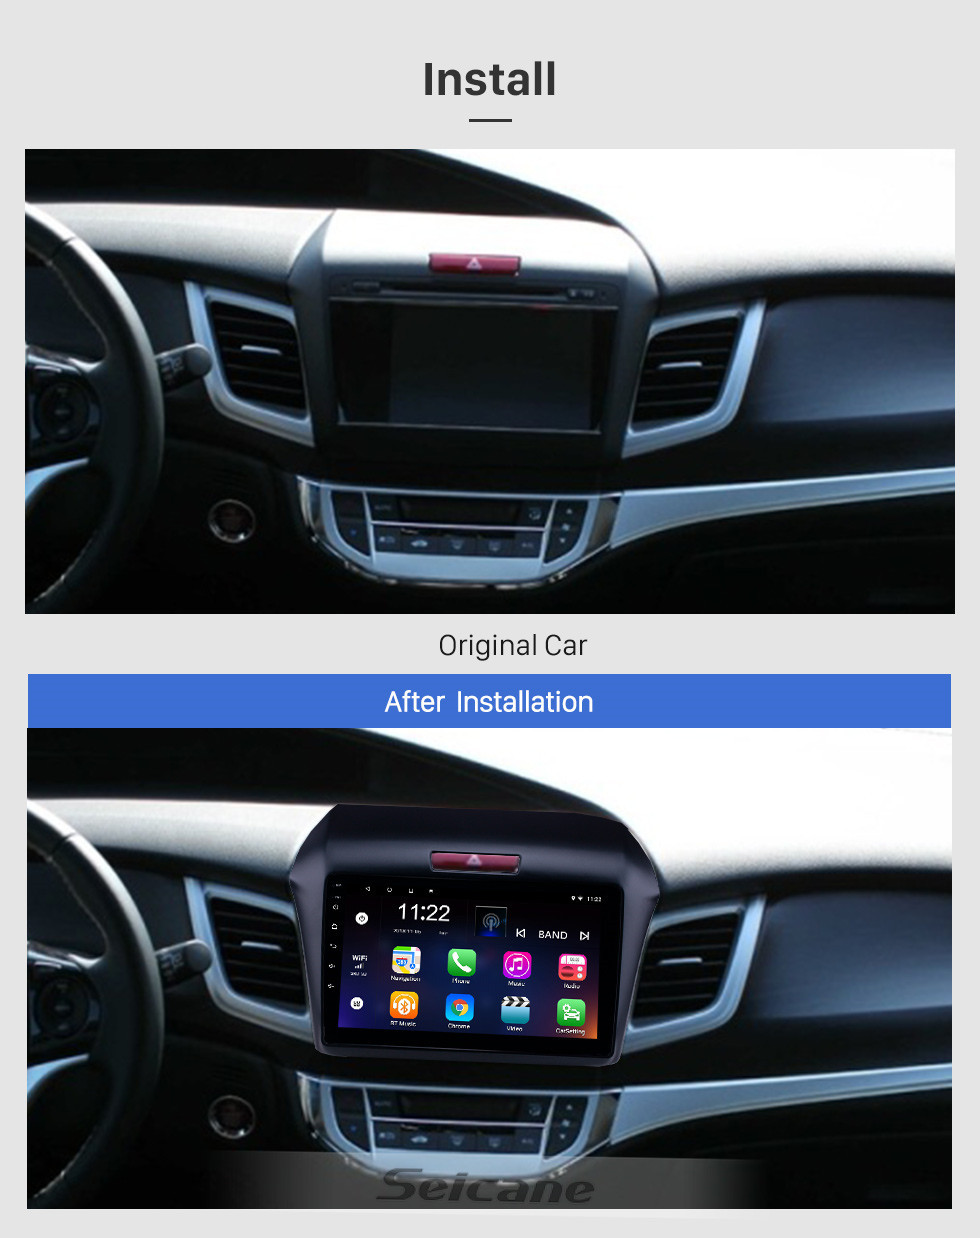 Seicane OEM 9 inch Android 10.0 Radio for 2013 Honda Jade Bluetooth WIFI HD Touchscreen GPS Navigation support Carplay Rear camera